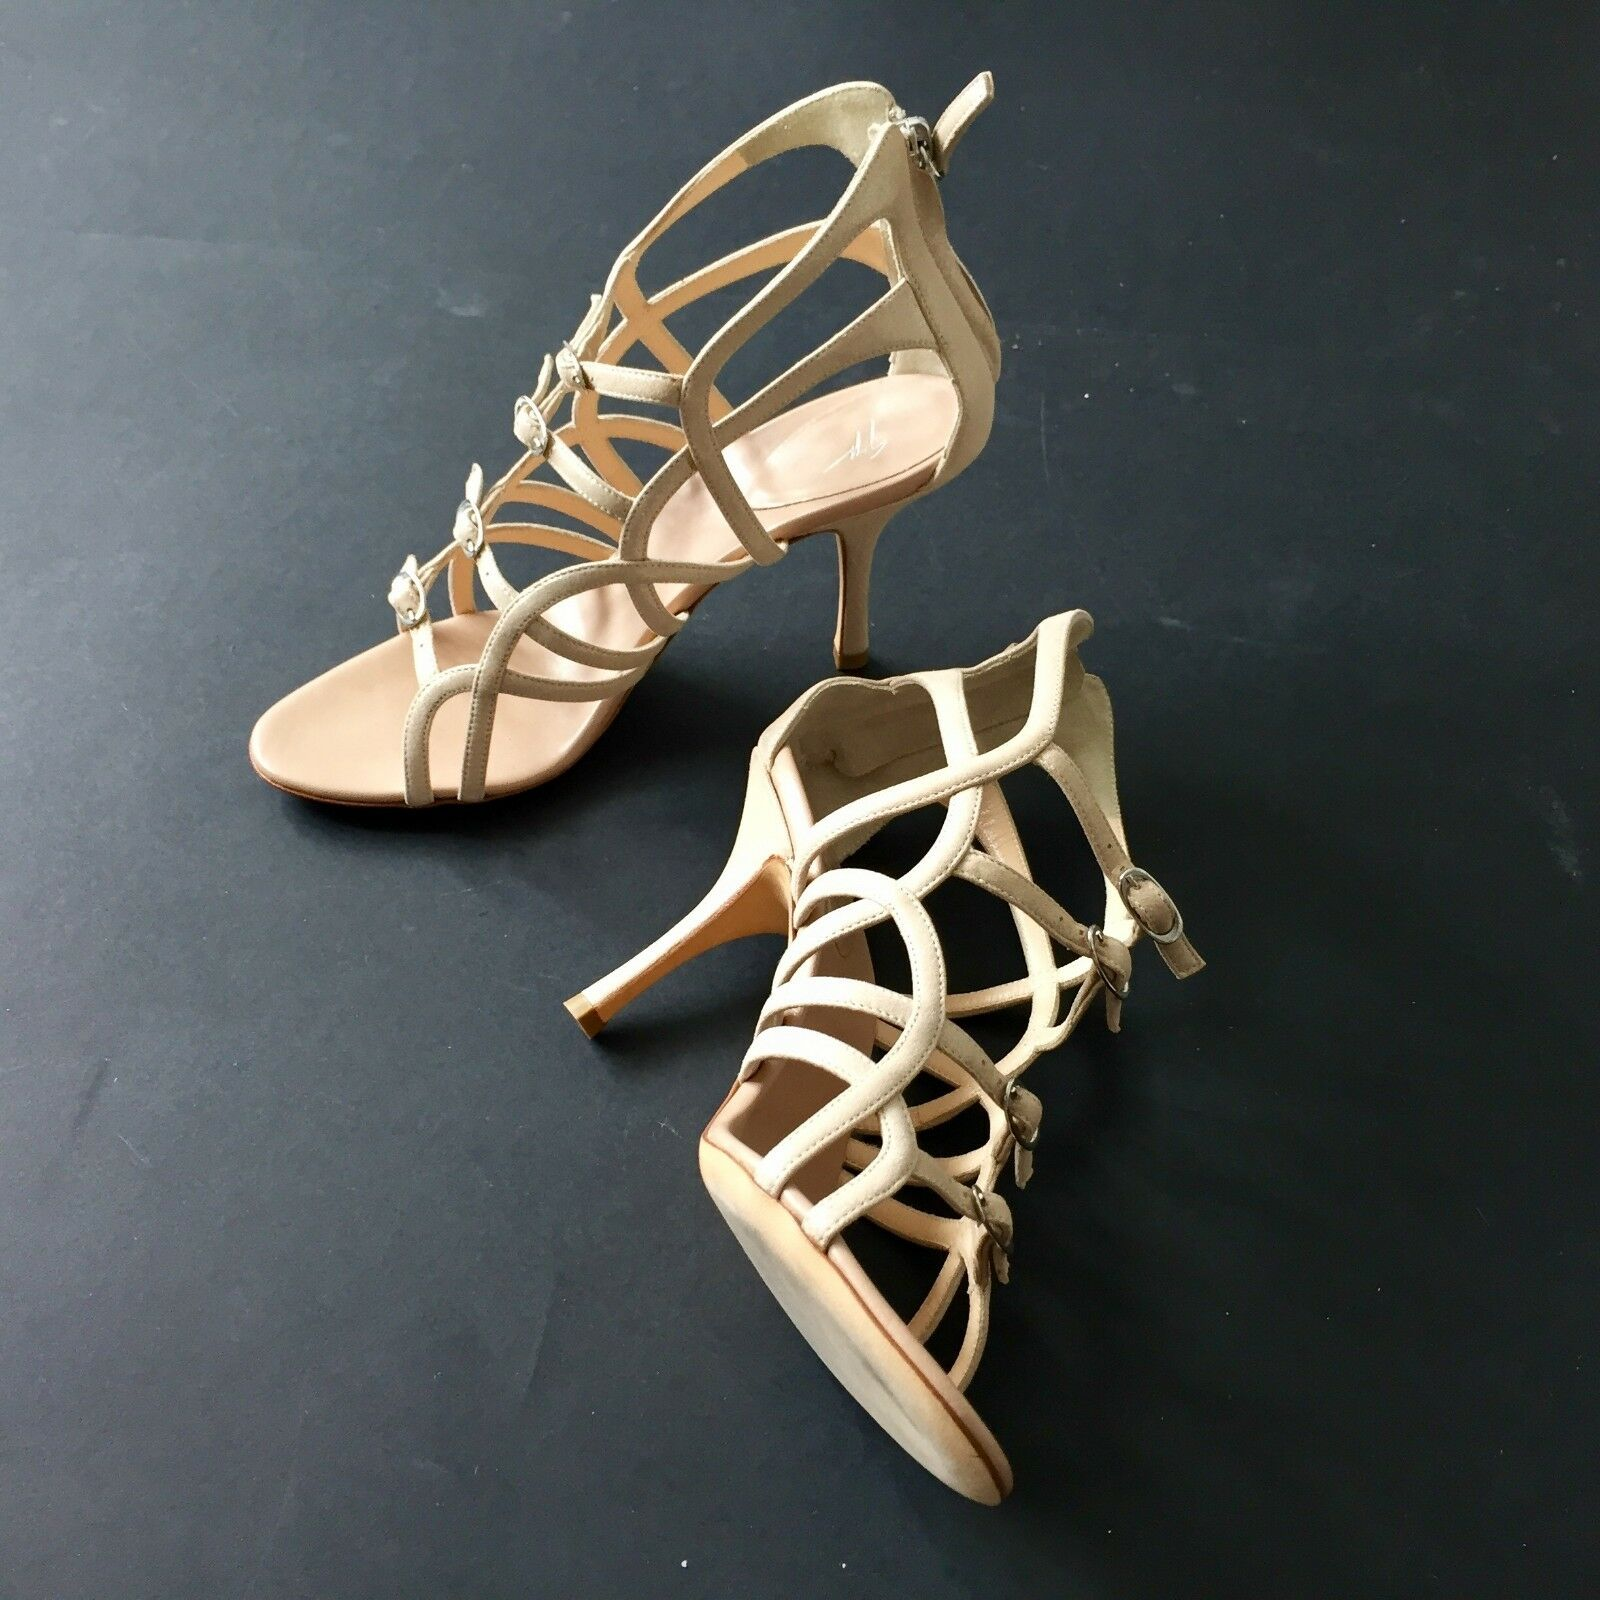 Giuseppe Zanotti Design golden Beige Heels Sandals Wendy UK Size 5 NEW